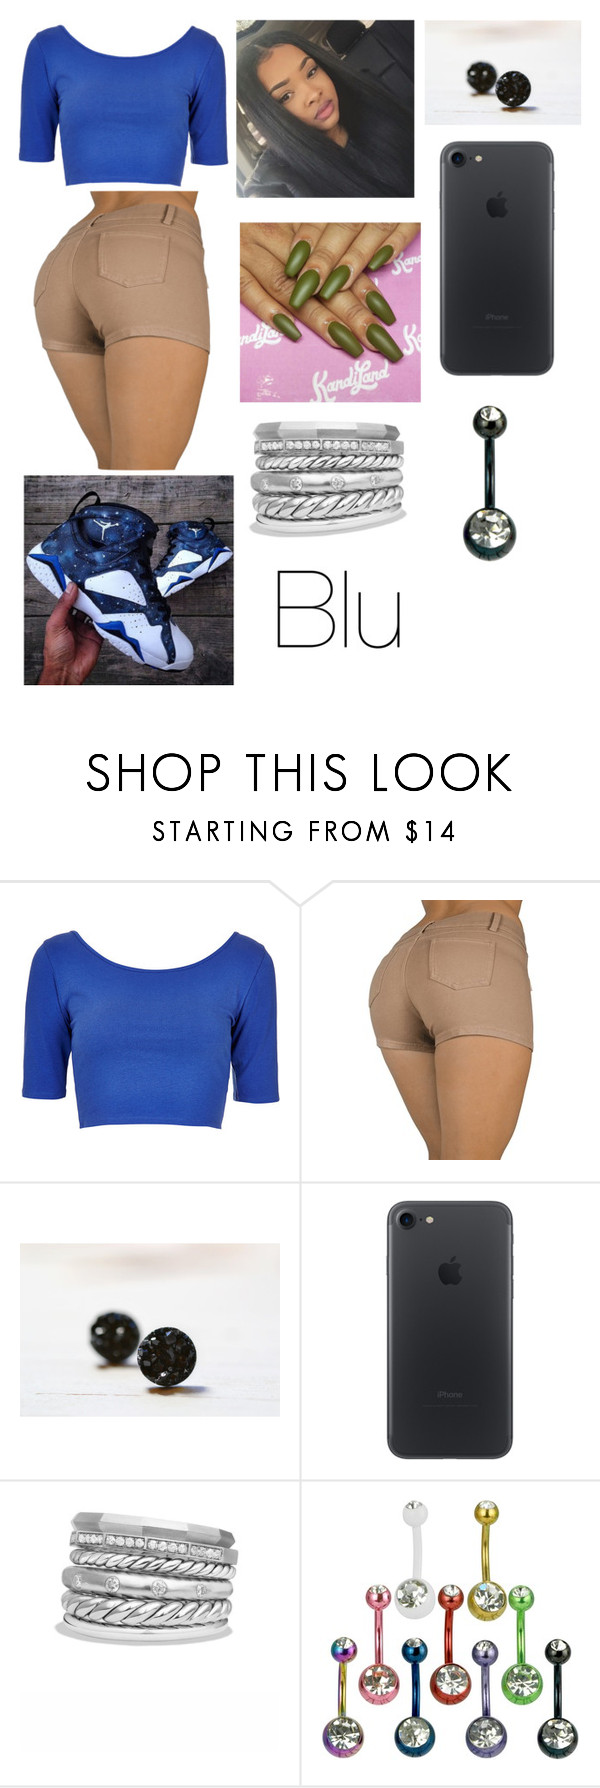 """""""Blu"""" by ceciliawilliams ❤ liked on Polyvore featuring Topshop and David Yurman"""